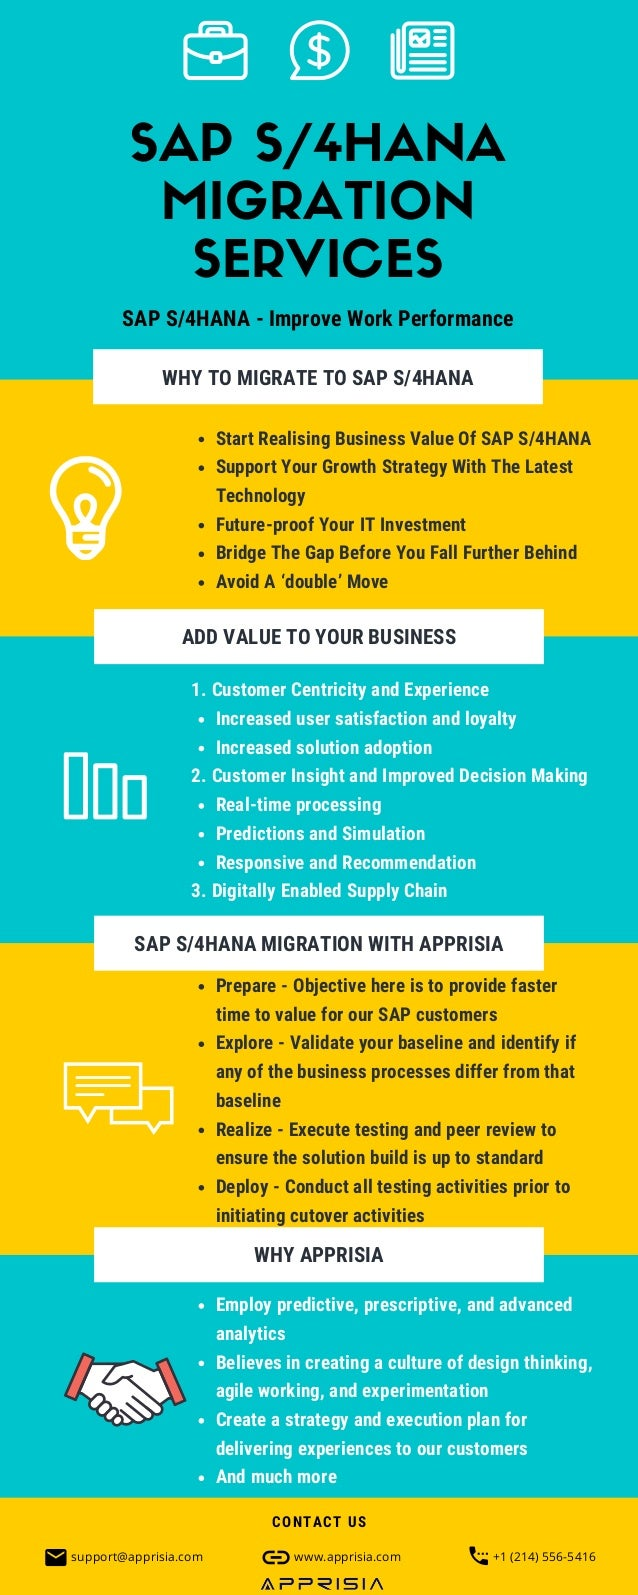 WHY TO MIGRATE TO SAP S/4HANA FOR REFERENCE: WWW.ENTREPRISESCANADA.CA Start Realising Business Value Of SAP S/4HANA Suppor...